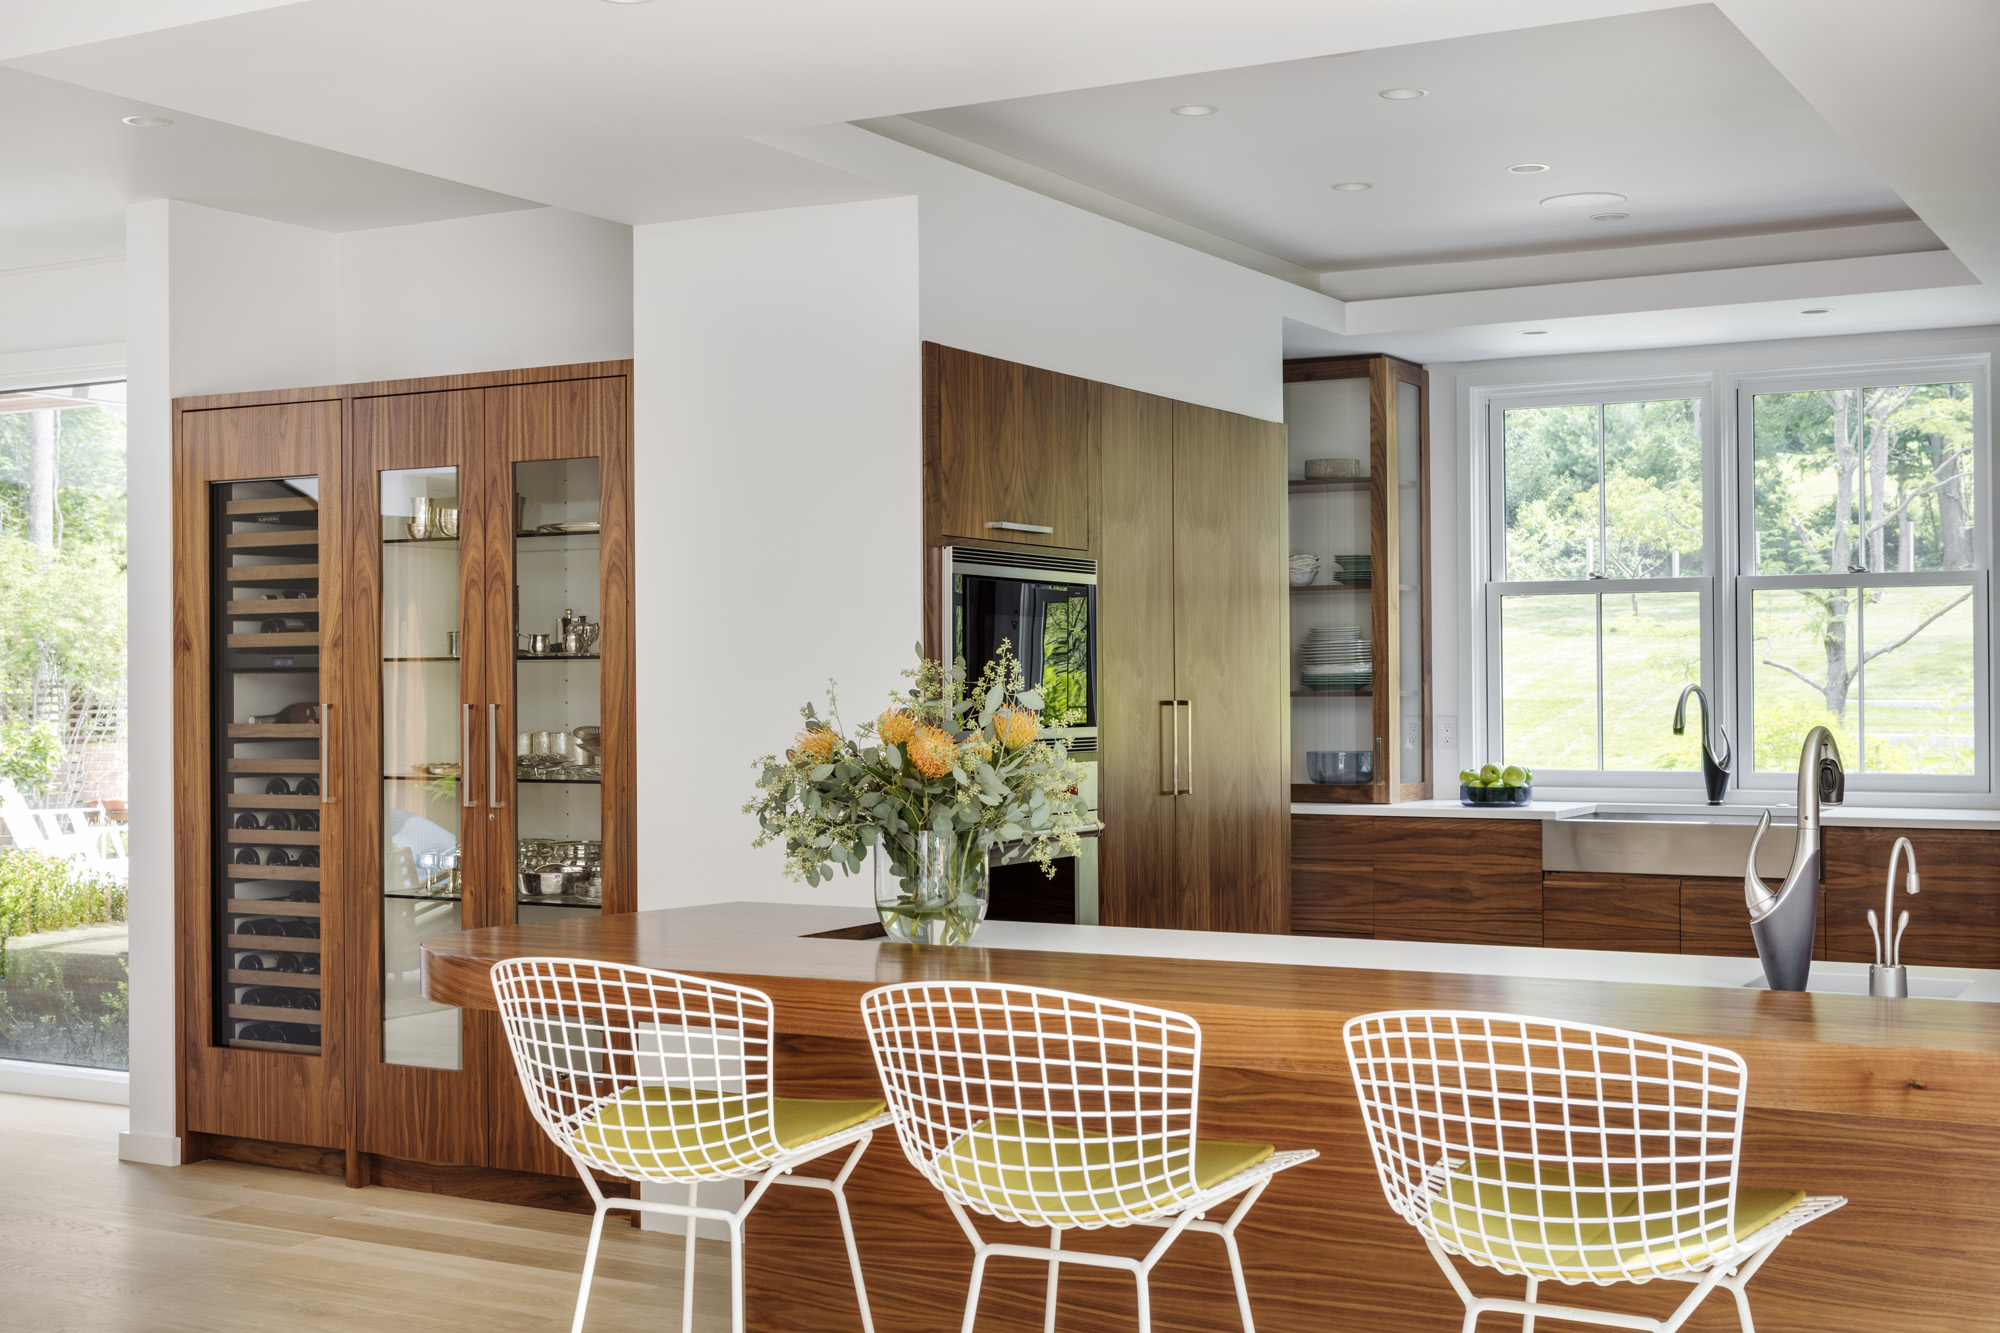 White Knoll chairs with a woven metal design are juxtaposed against the polished look of the rest of the kitchen. The wine refrigerator is from Sub-Zero.